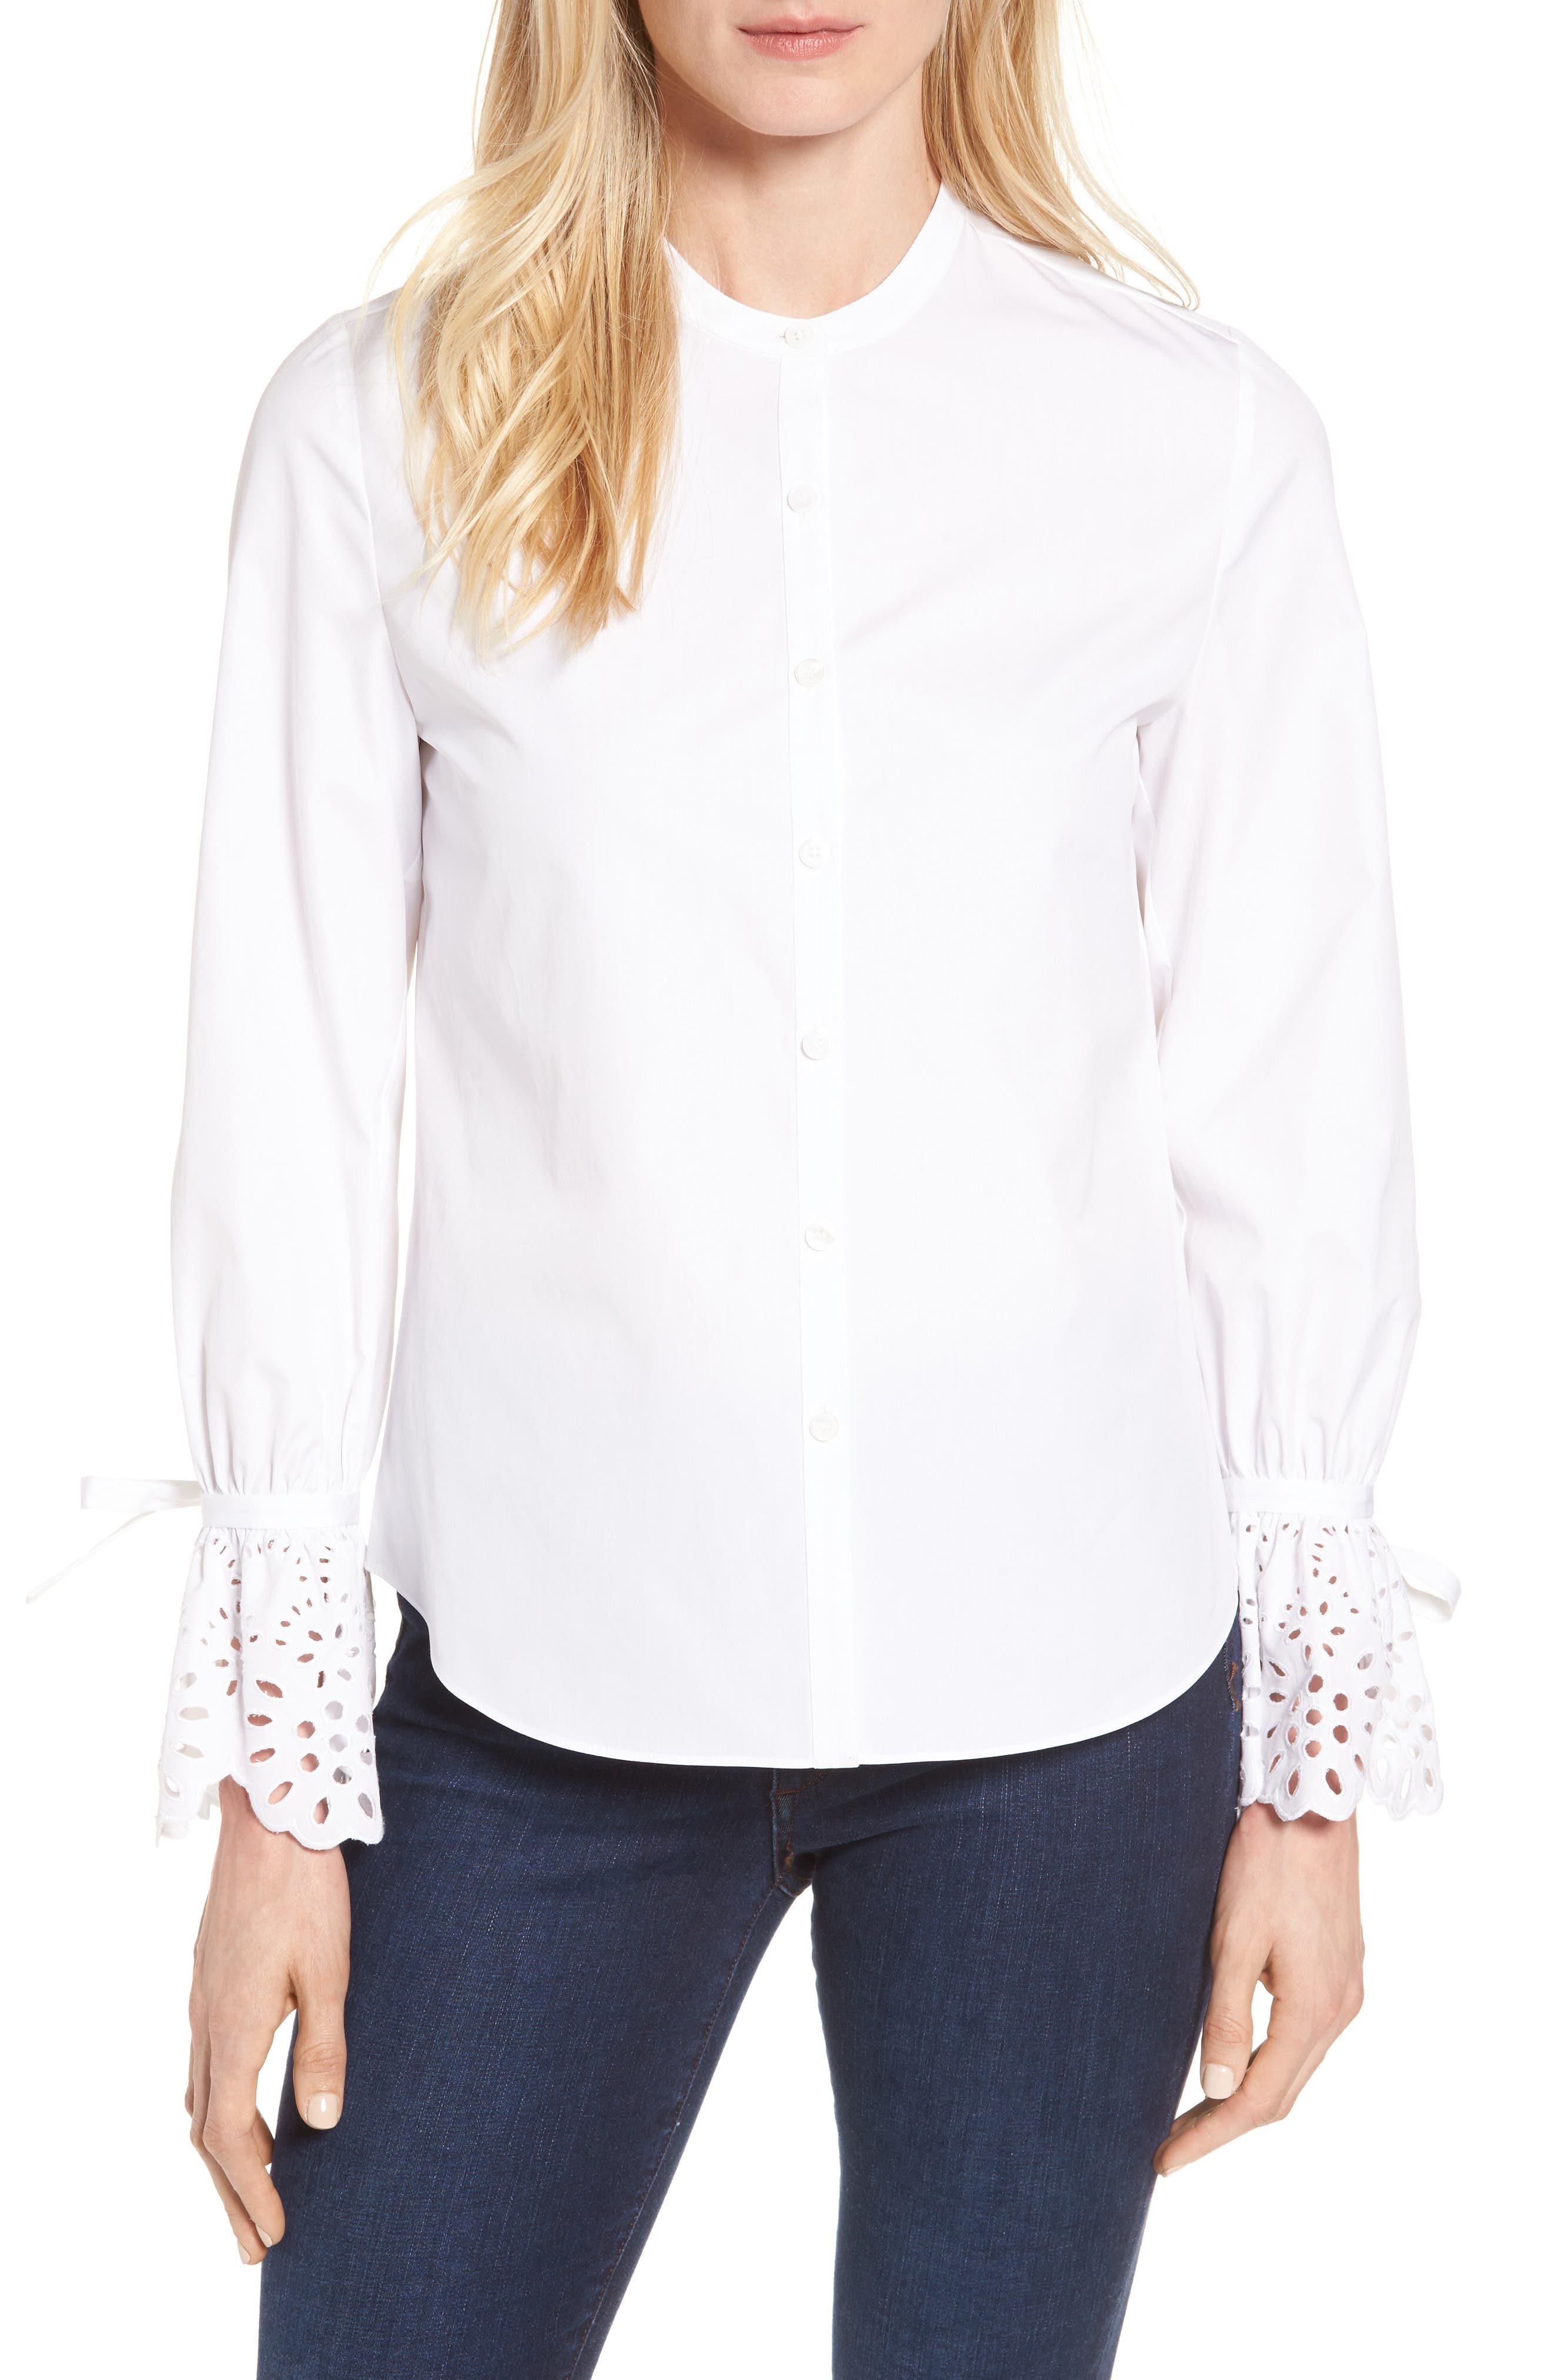 Nordstrom Signature Eyelet Cuff Poplin Blouse